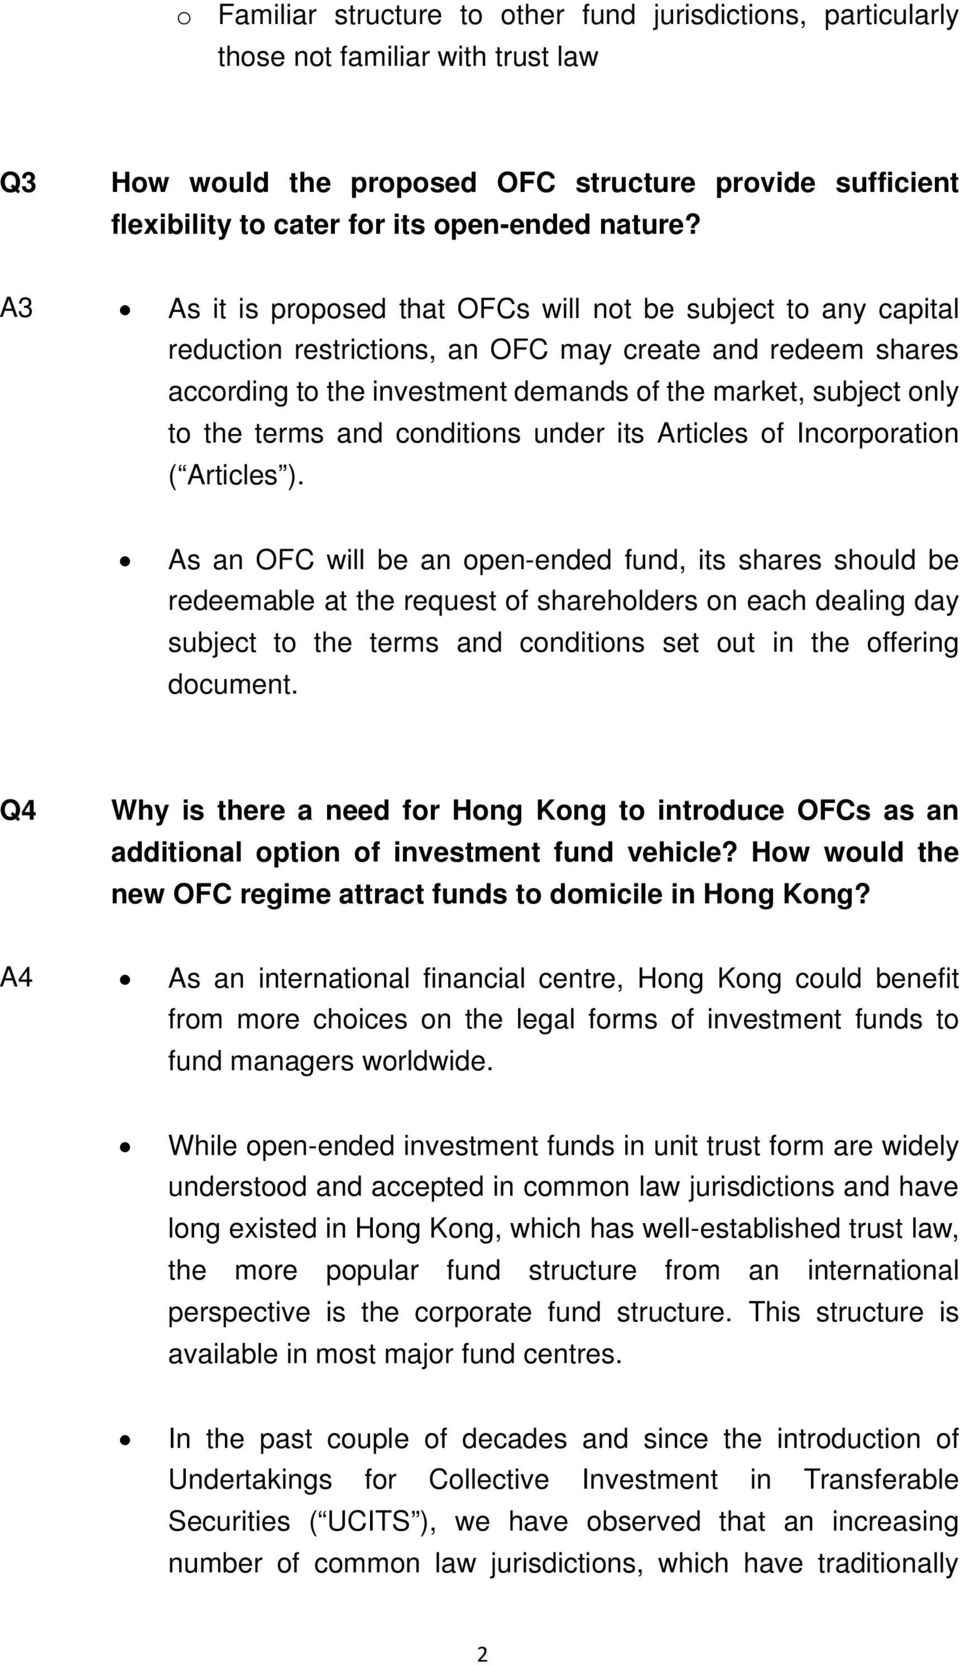 A3 As it is proposed that OFCs will not be subject to any capital reduction restrictions, an OFC may create and redeem shares according to the investment demands of the market, subject only to the